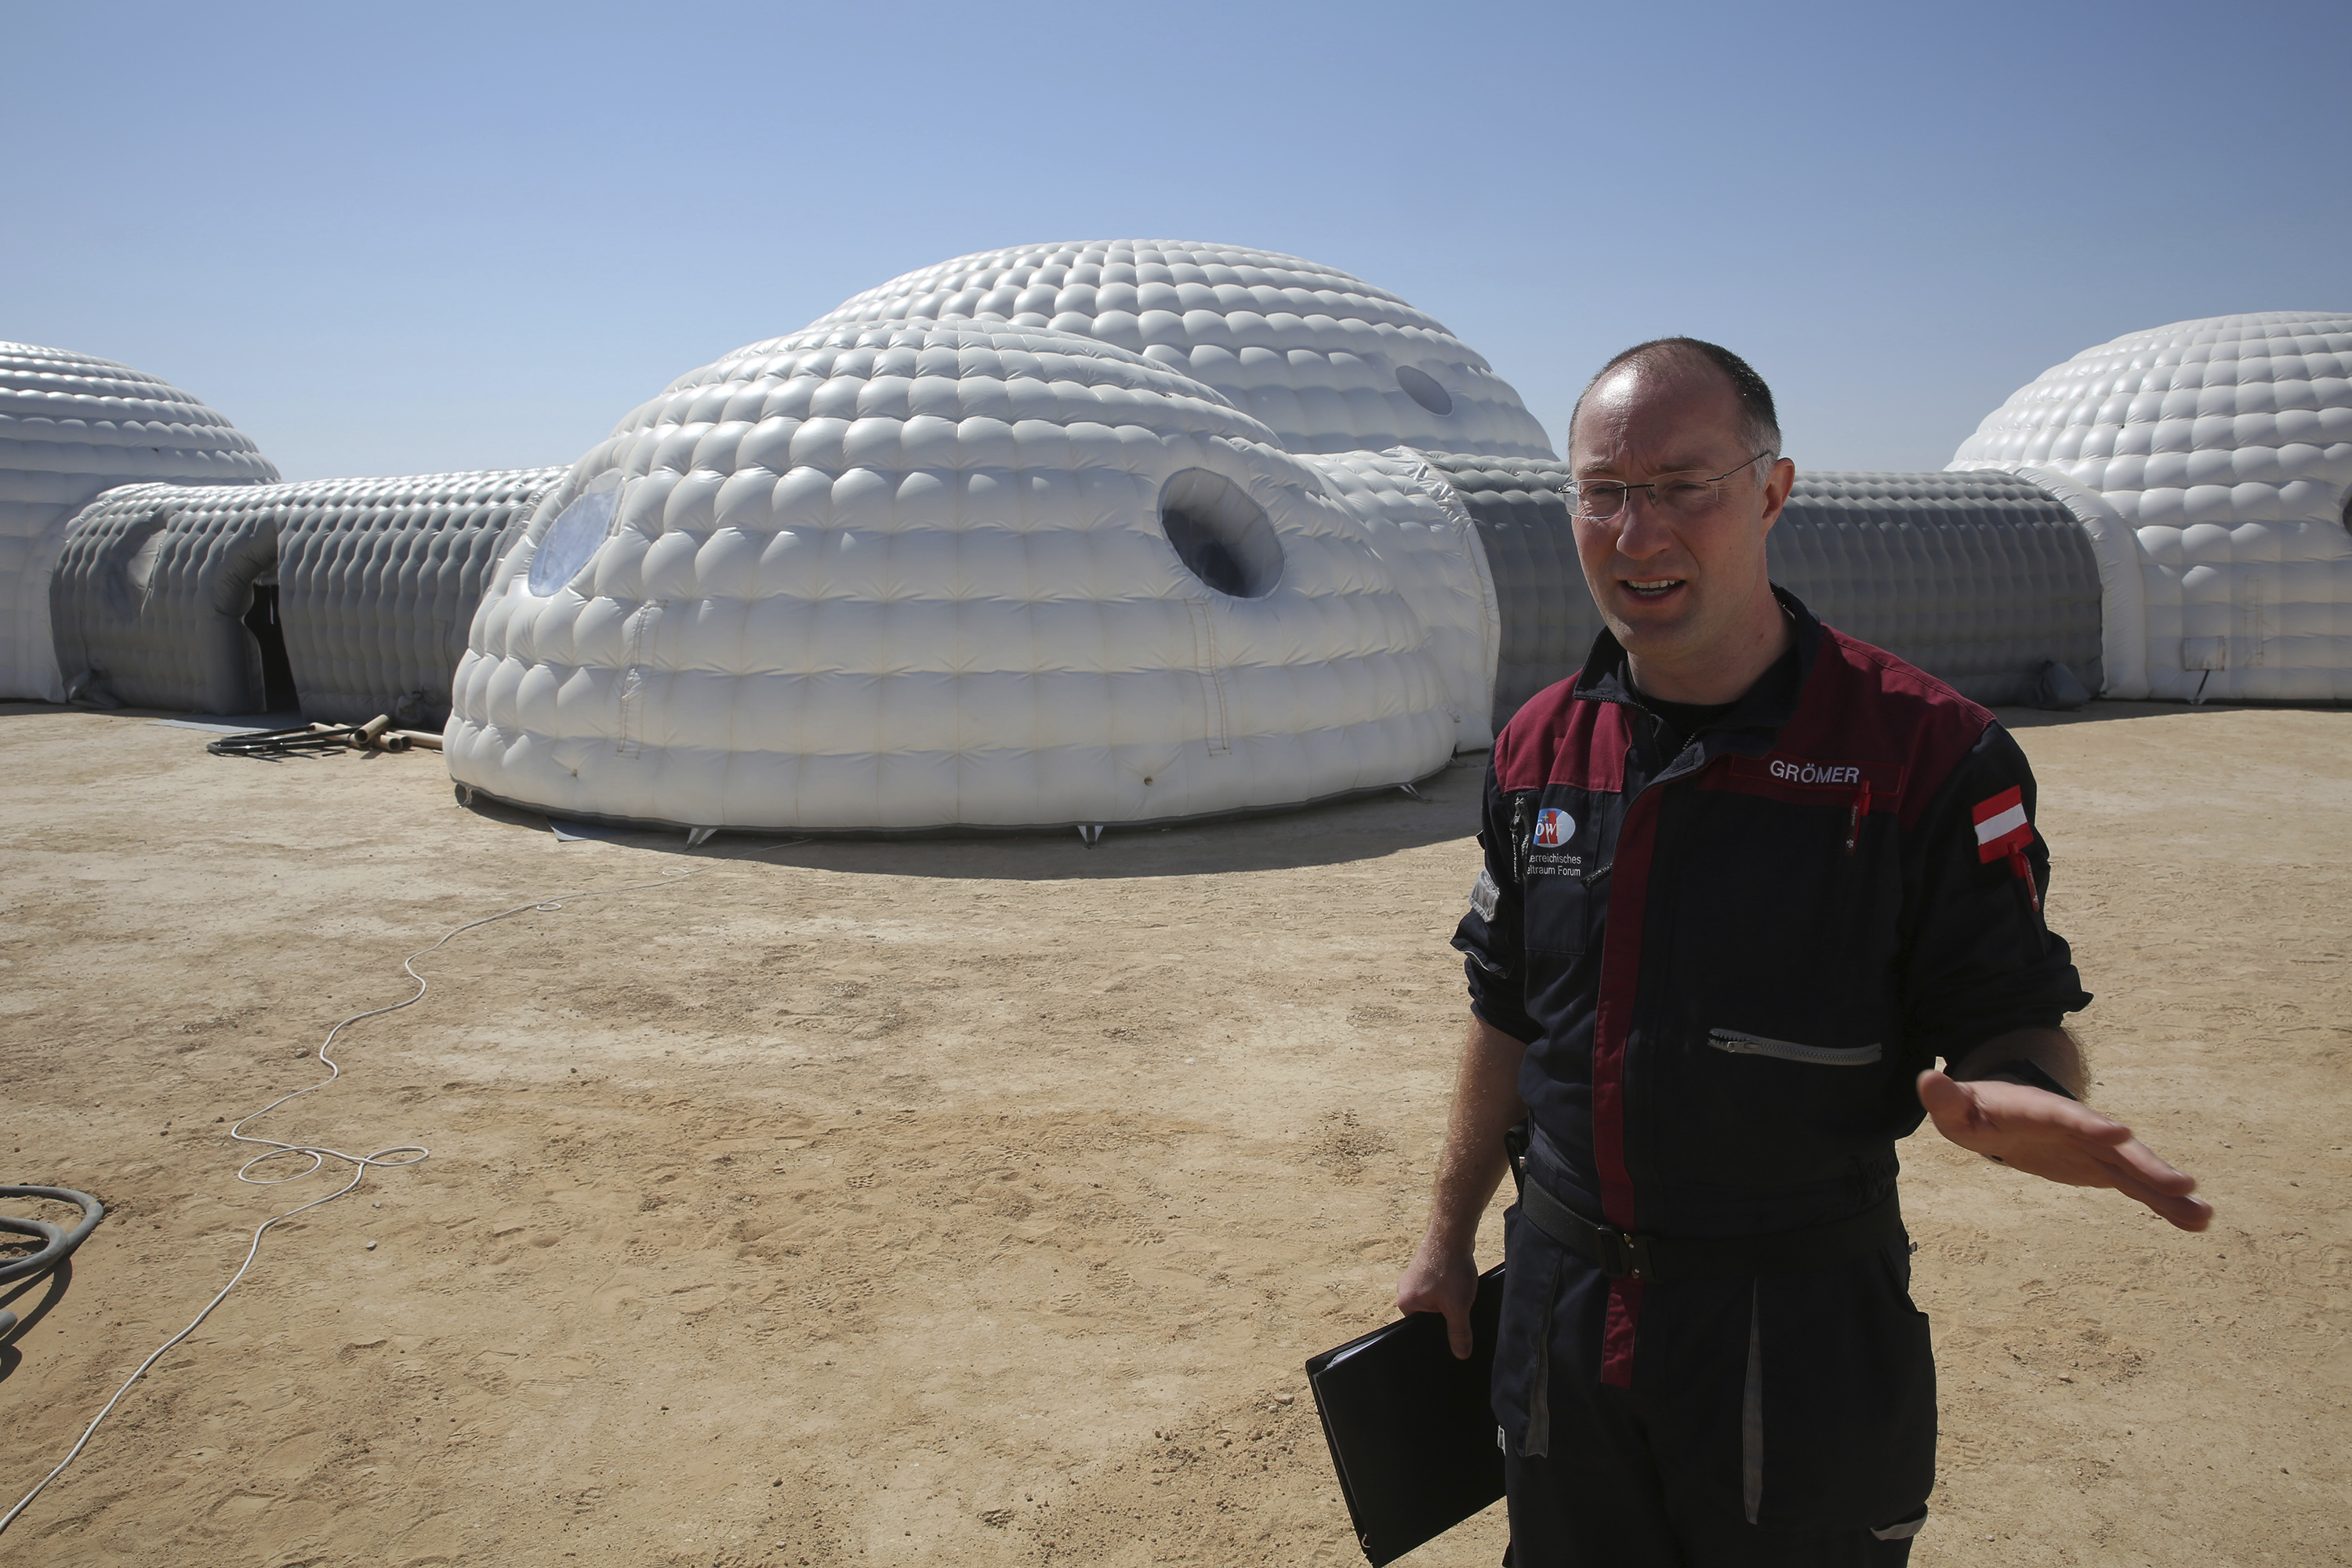 Gernot Groemer, commander of the AMADEE-18 Mars simulation in the Dhofar desert of southern Oman (Sam McNeil/AP)